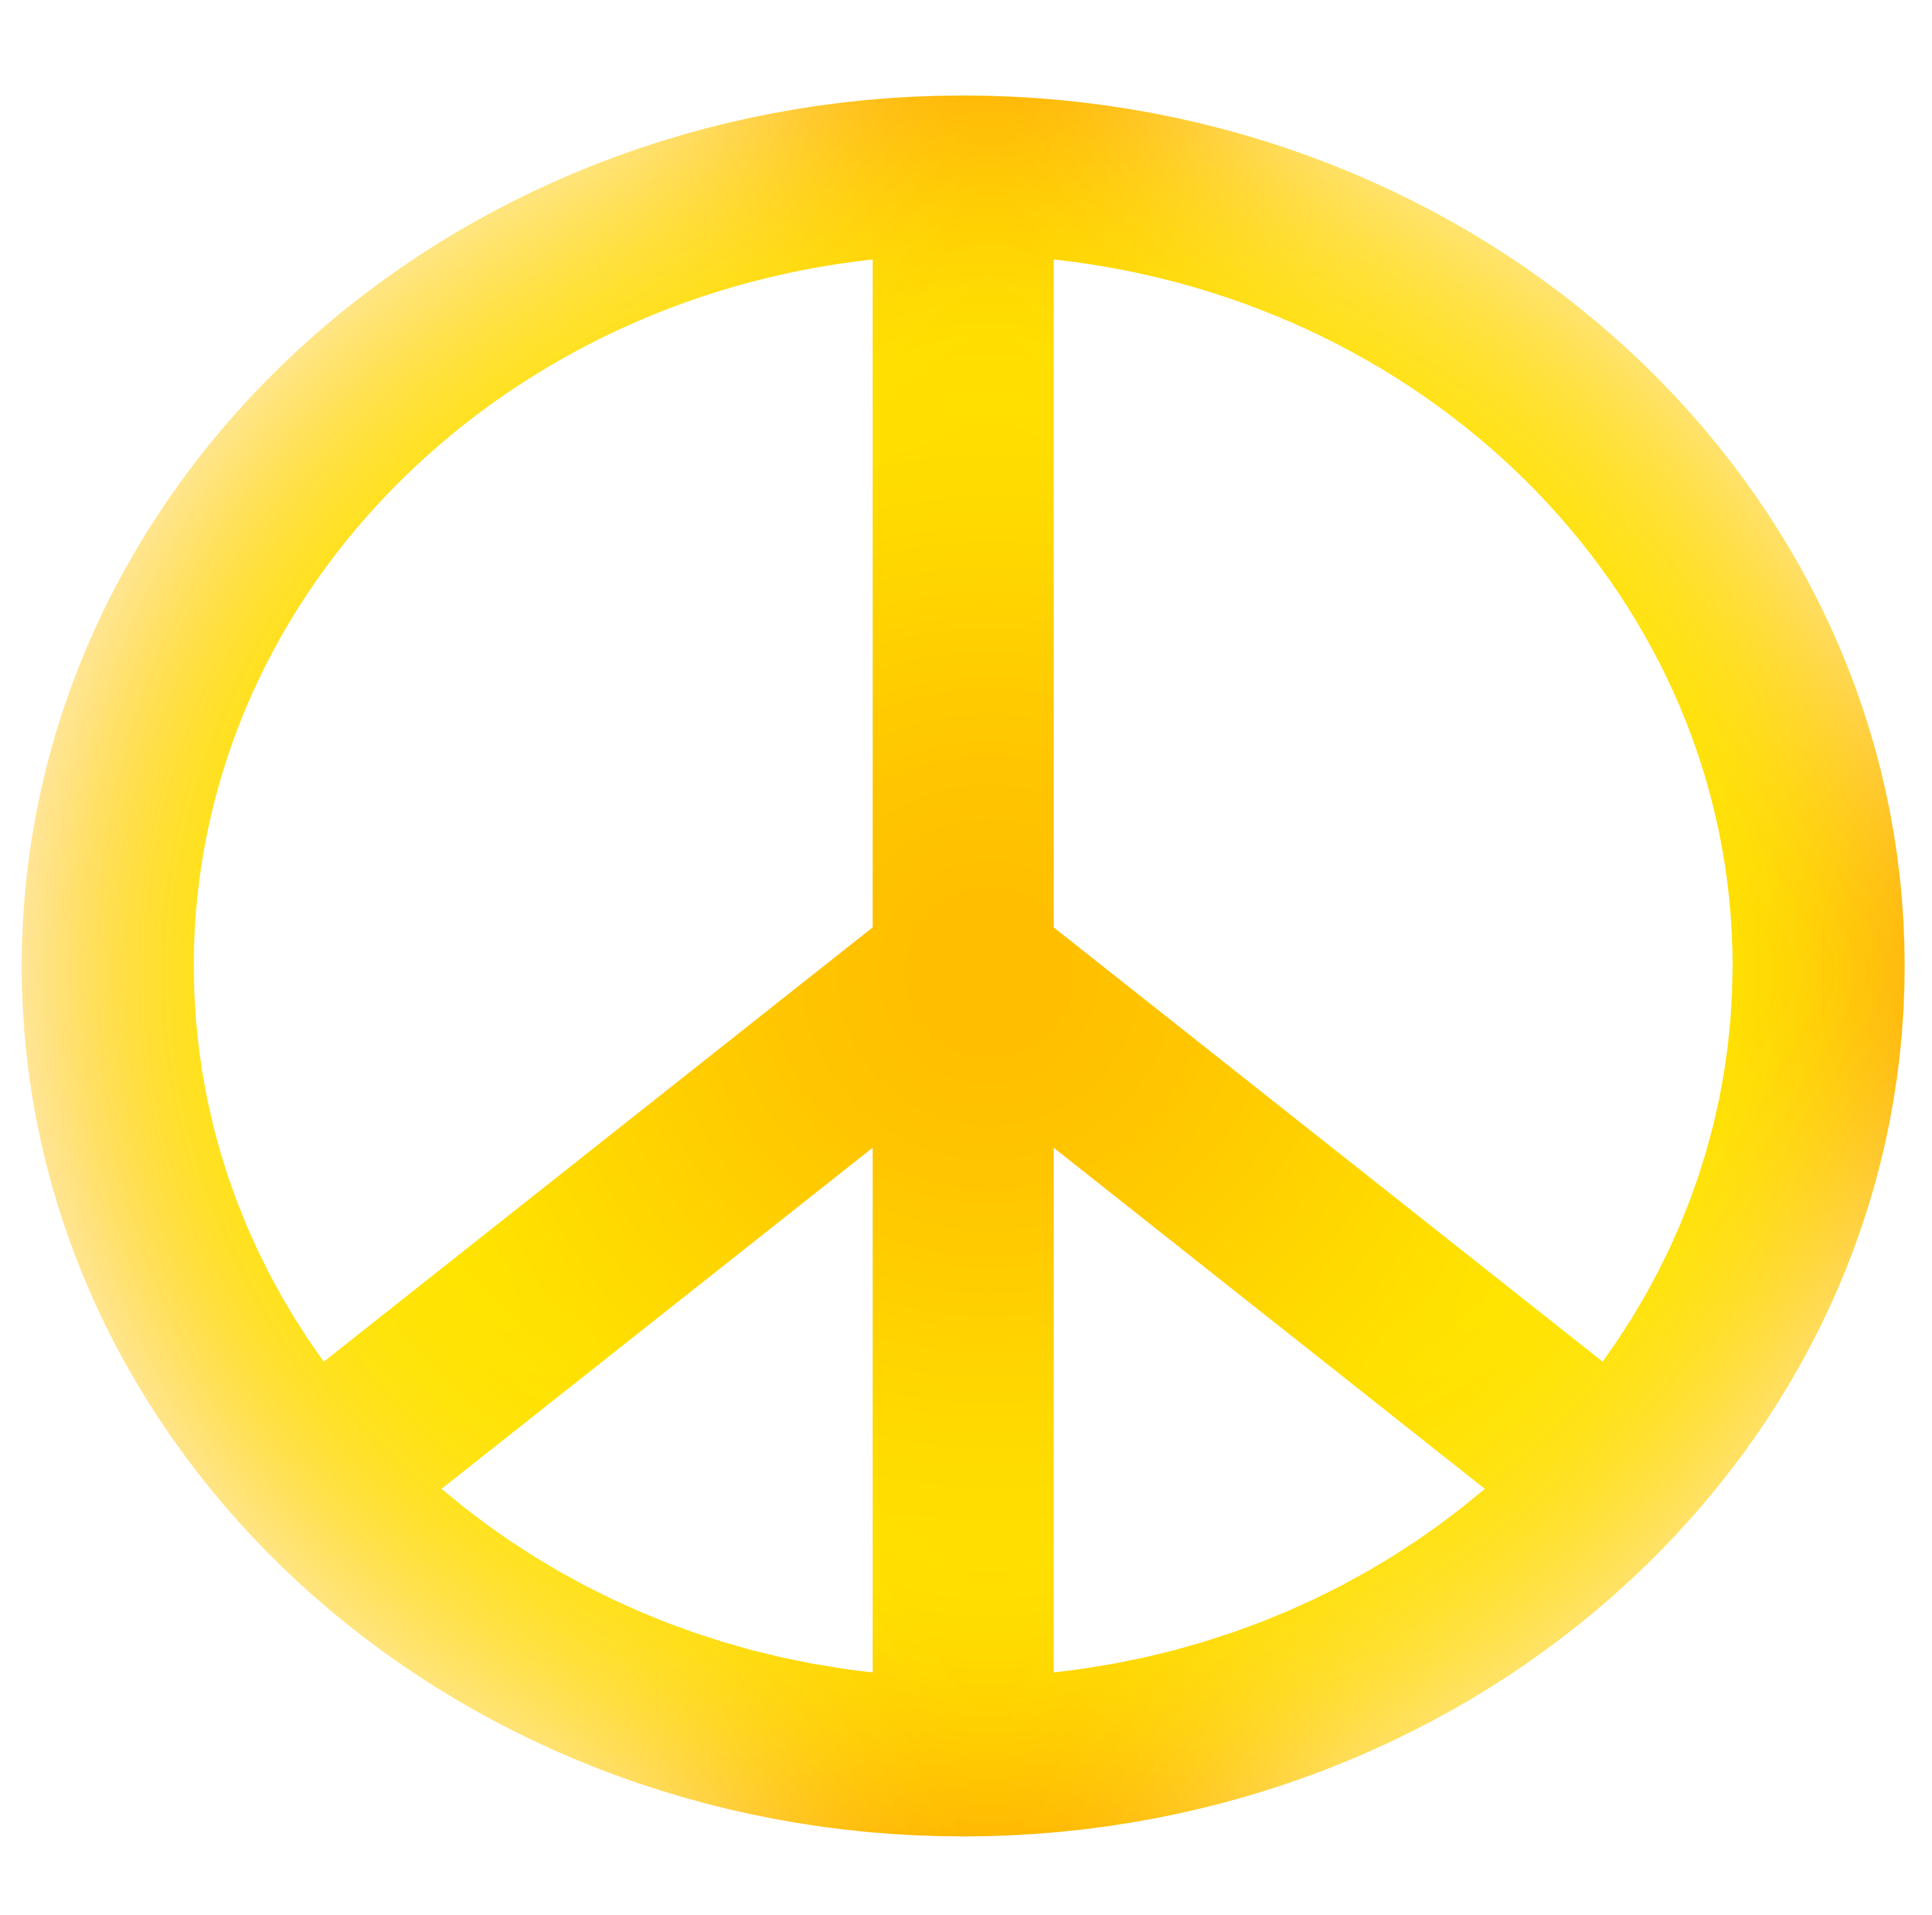 Peace Symbol PNG Transparent Images.